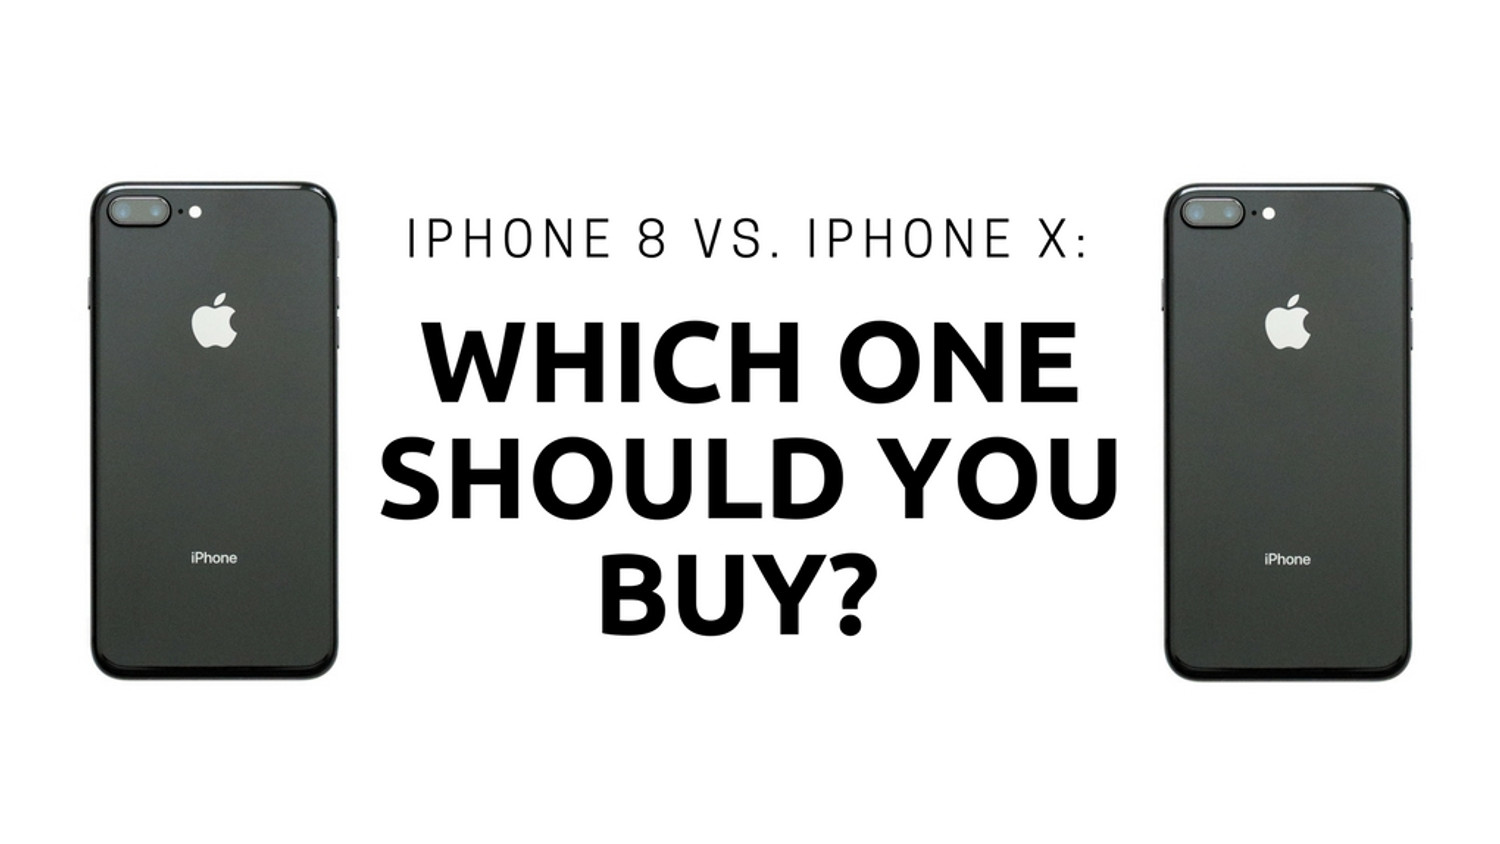 iPhone 8 vs. iPhone X: Which one should you buy?